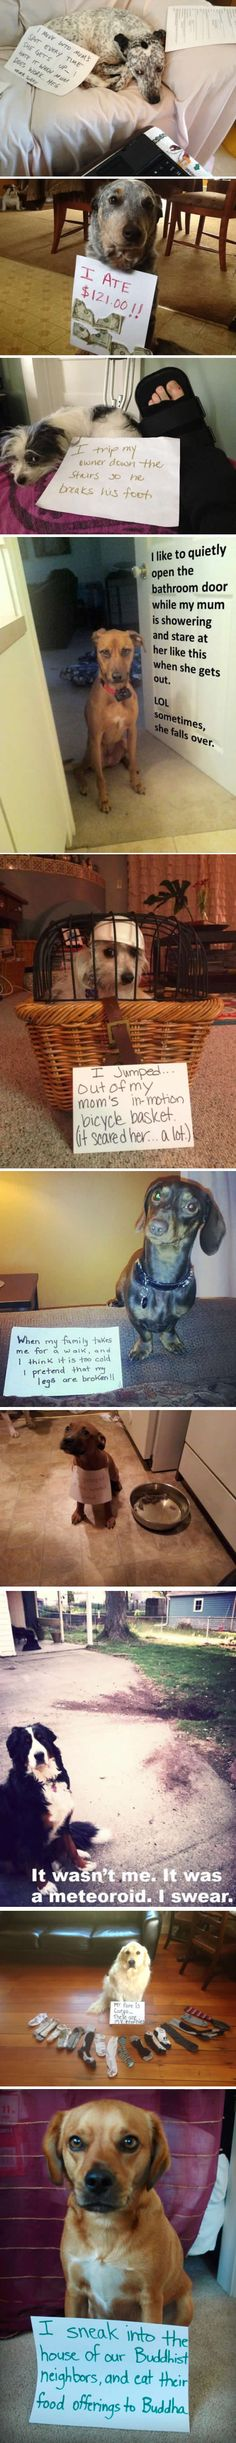 NEW!!!! Best of Dog Shaming !!!!